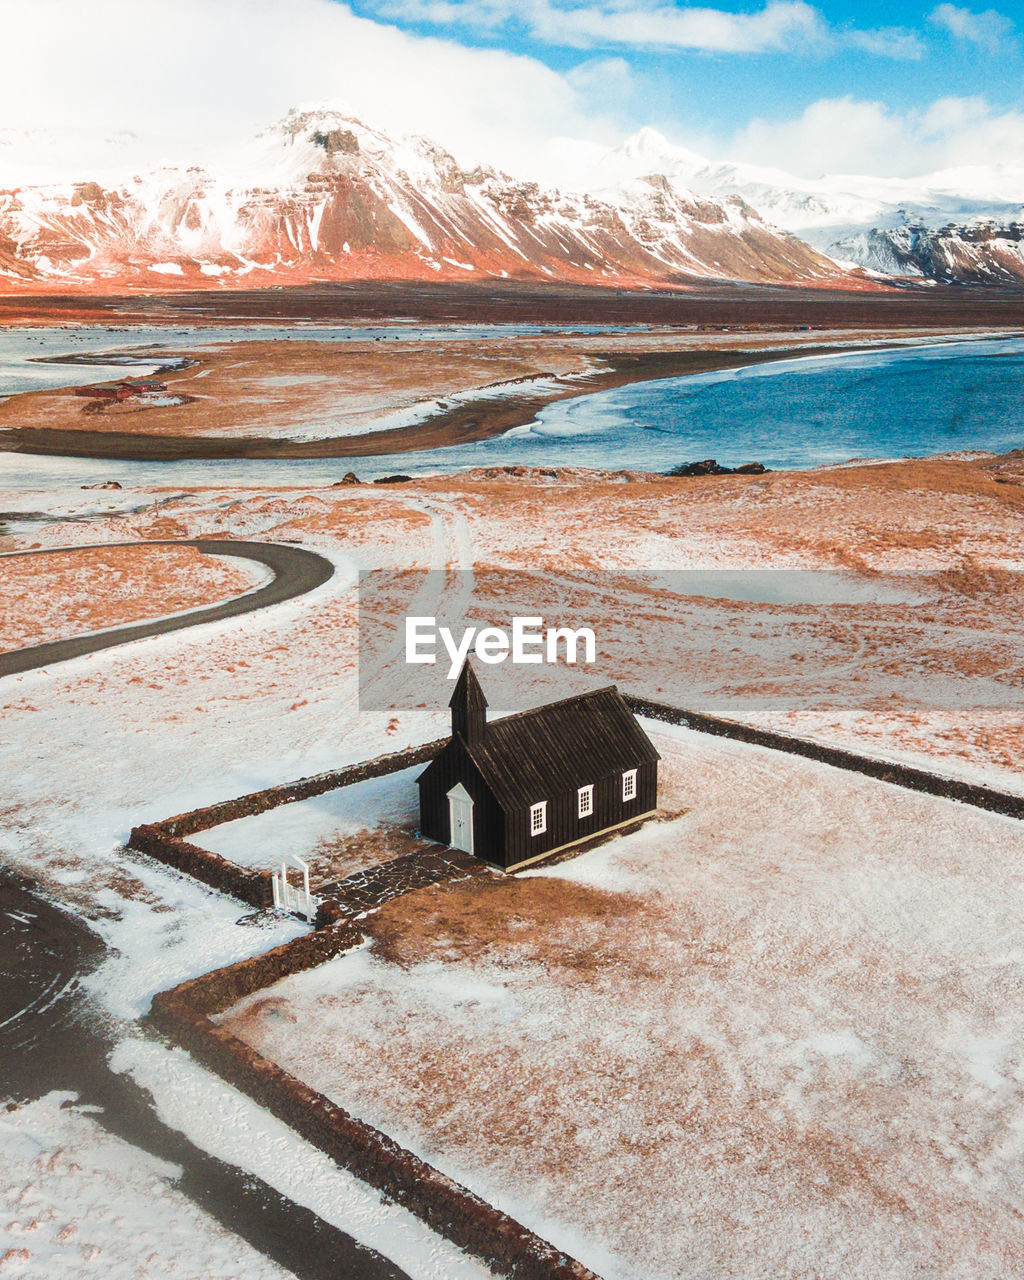 High Angle View Of House On Field Against Mountains During Winter